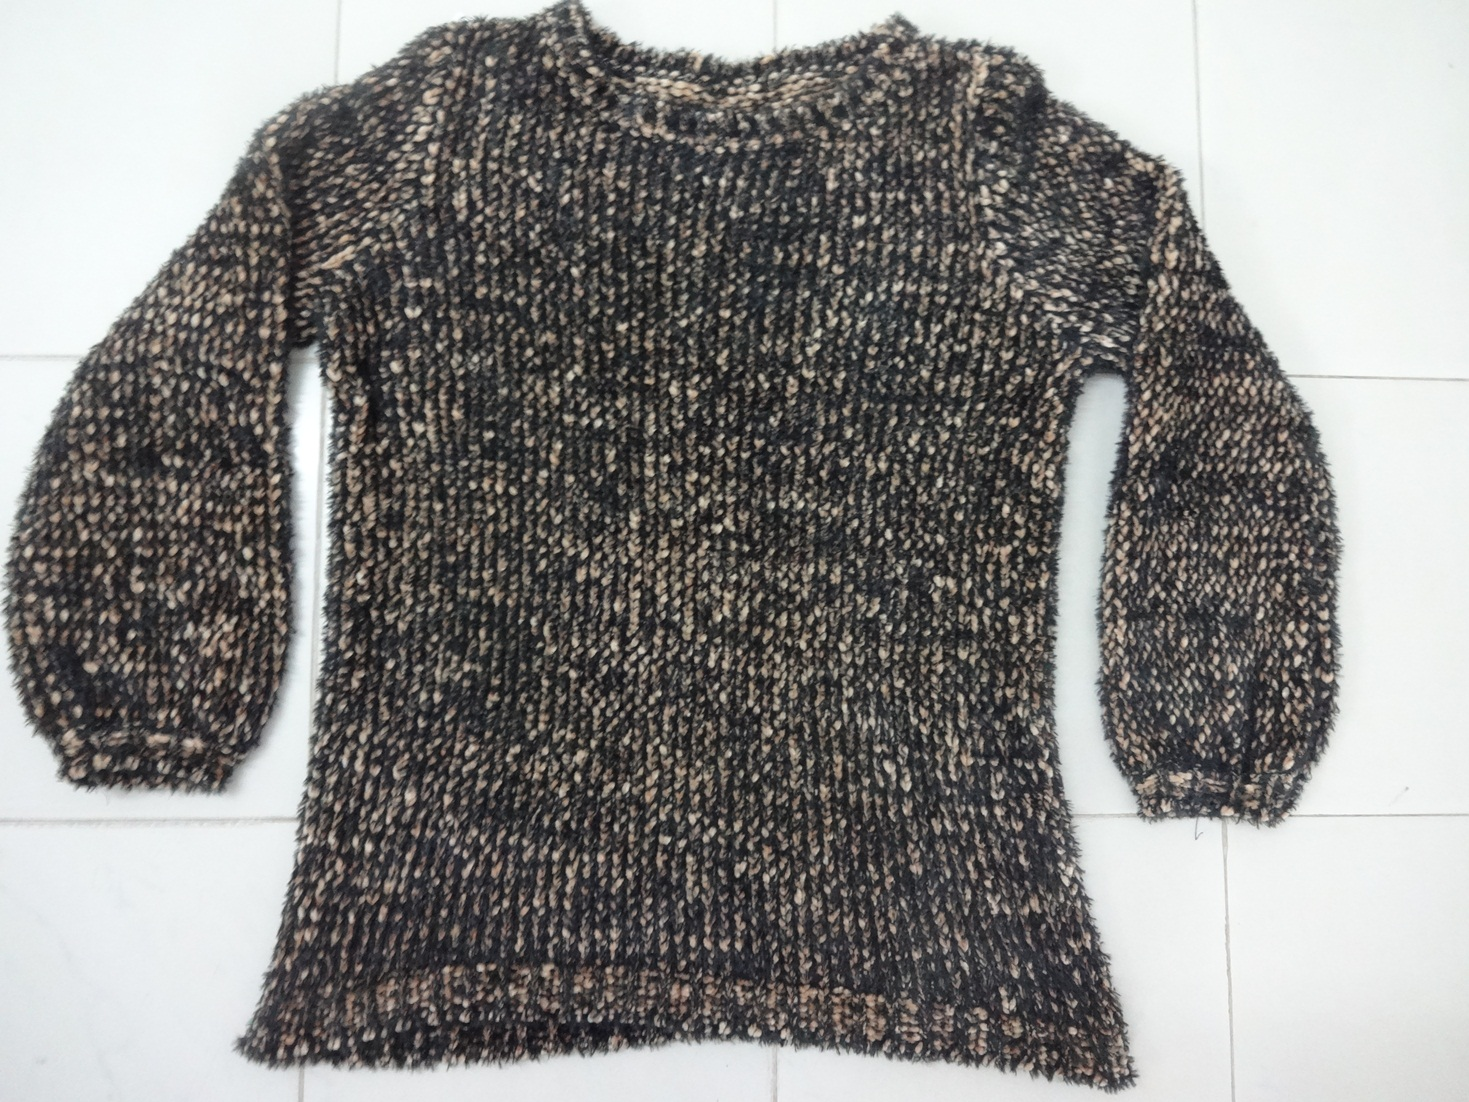 STYLE-1110030012-FRONT-2